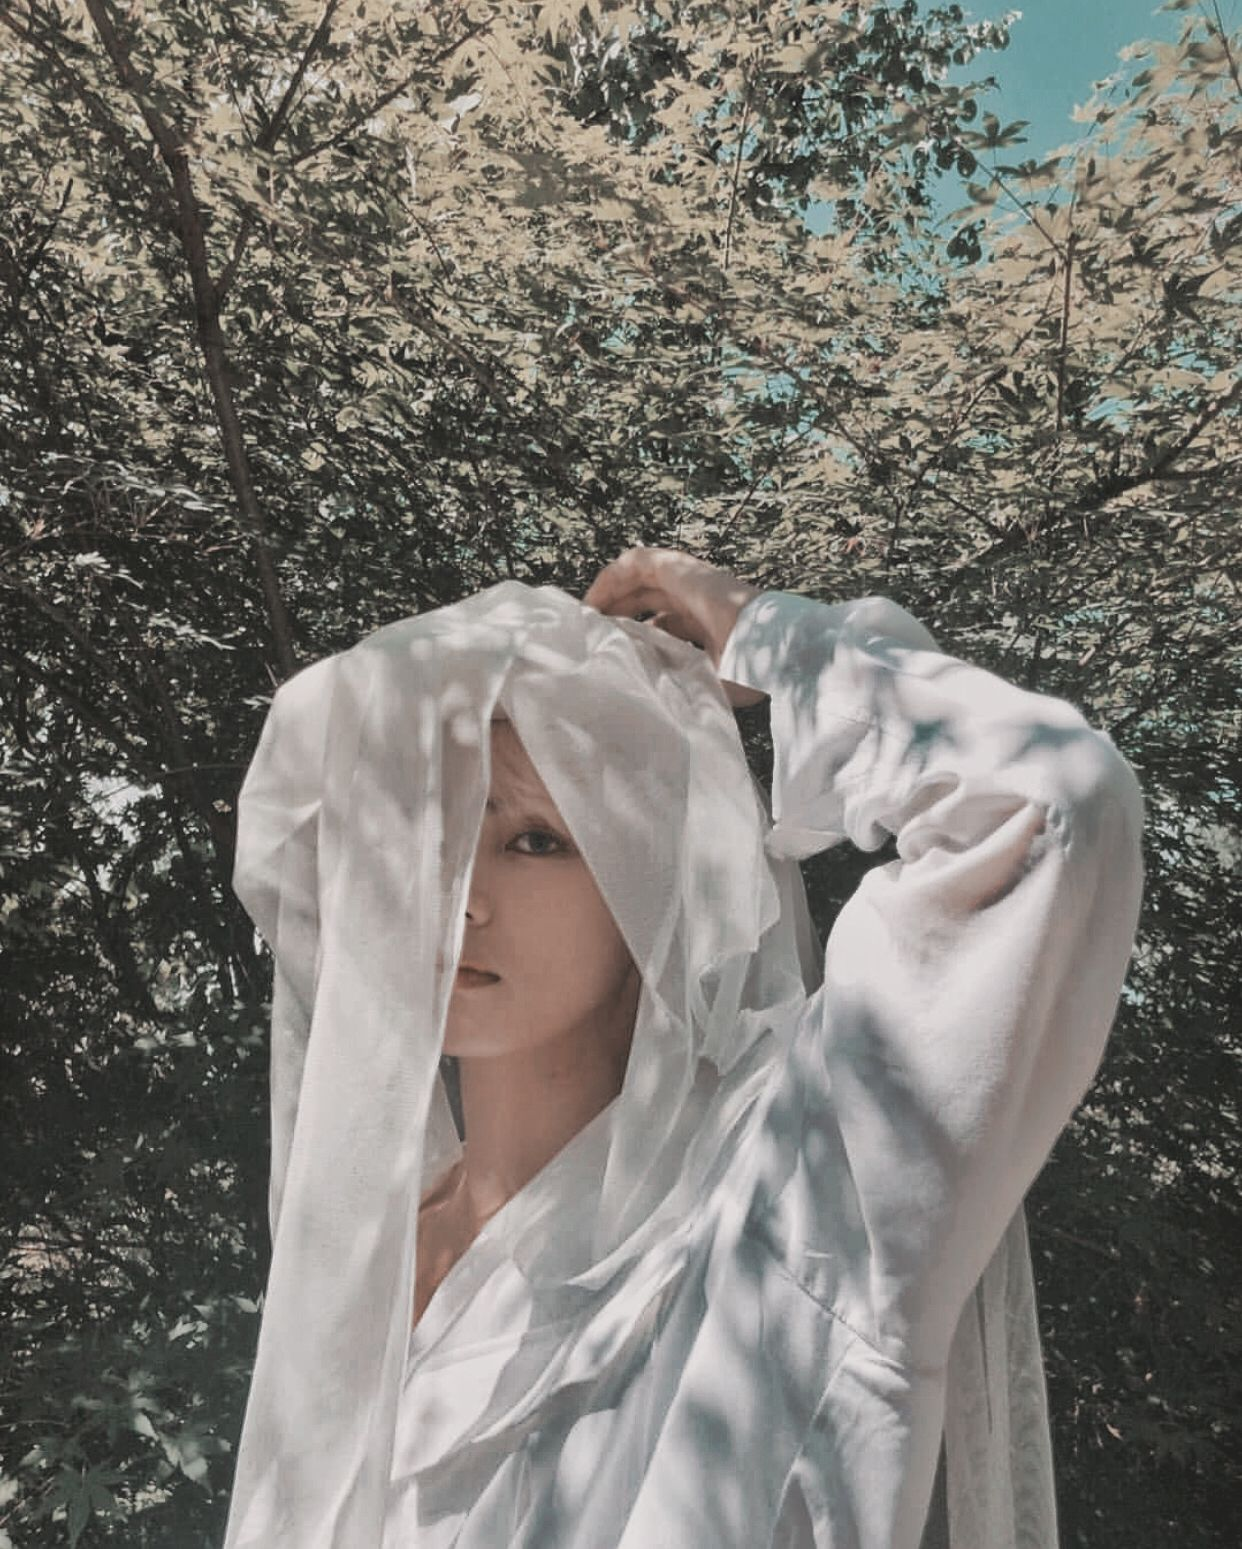 Bts Aesthetic Profile Pictures